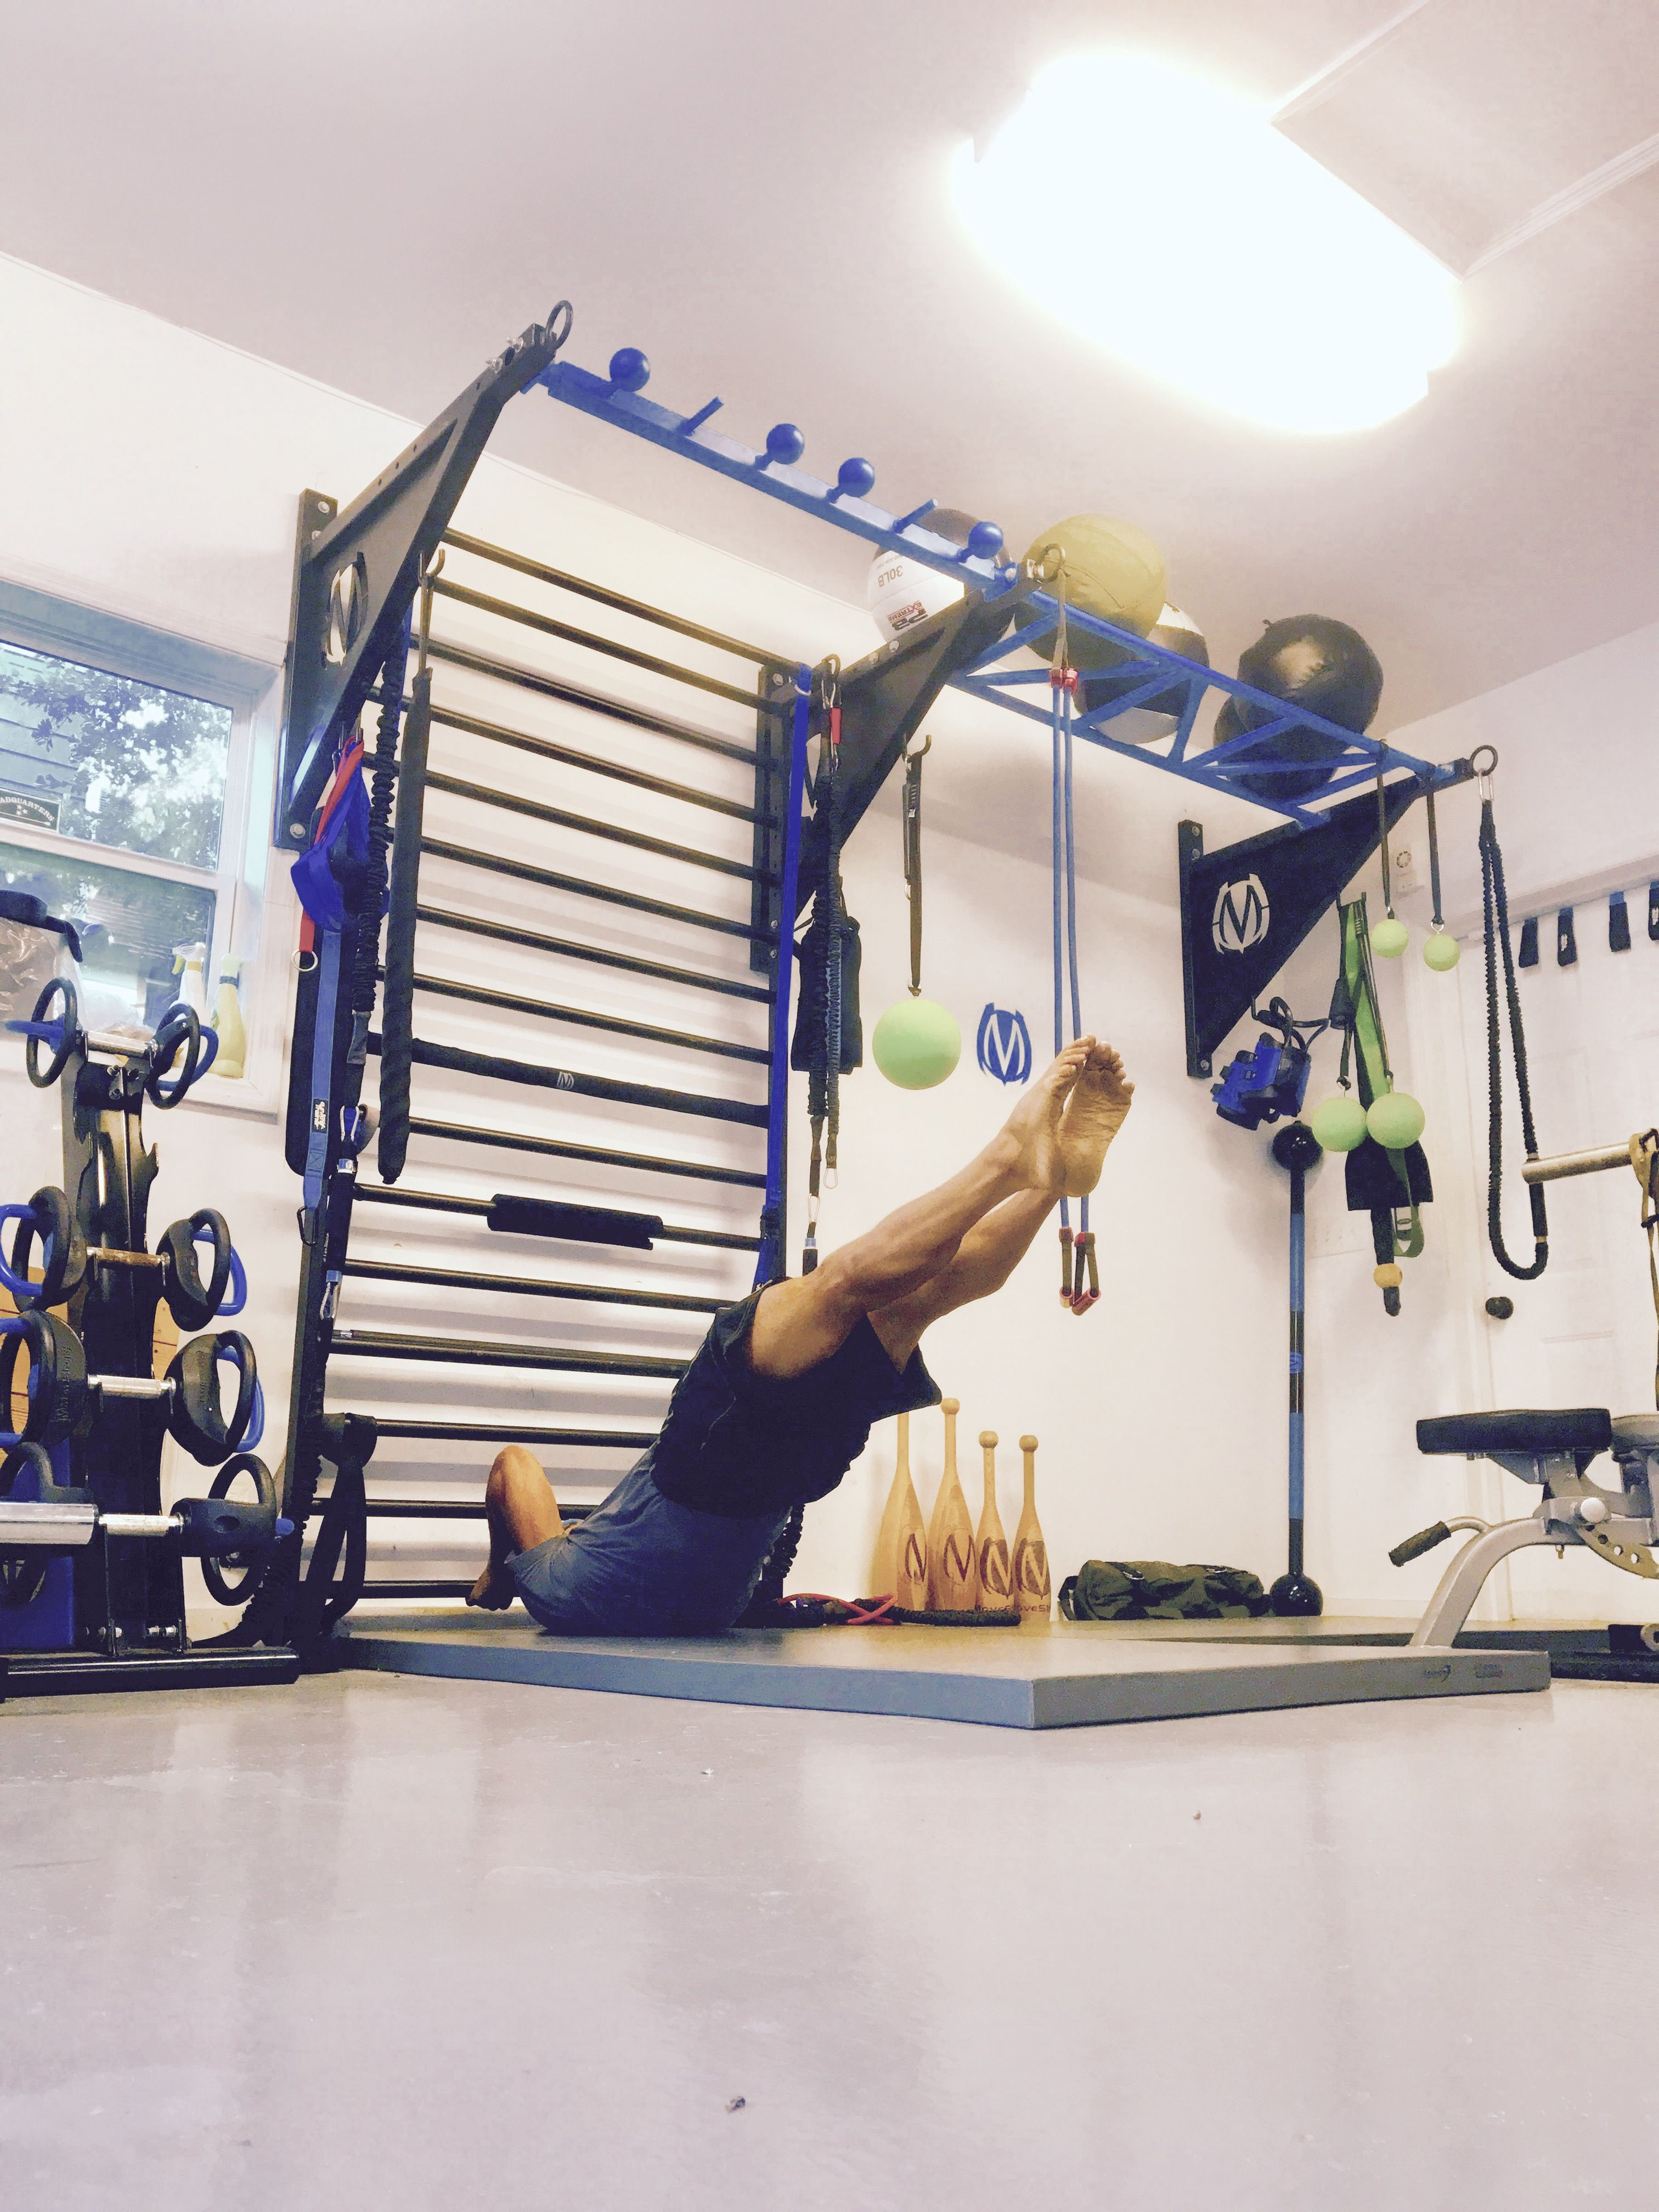 Fitnessstudio Einrichtung Dragon Flag Core Exercise Using Movestrong Stall Bars Part Of